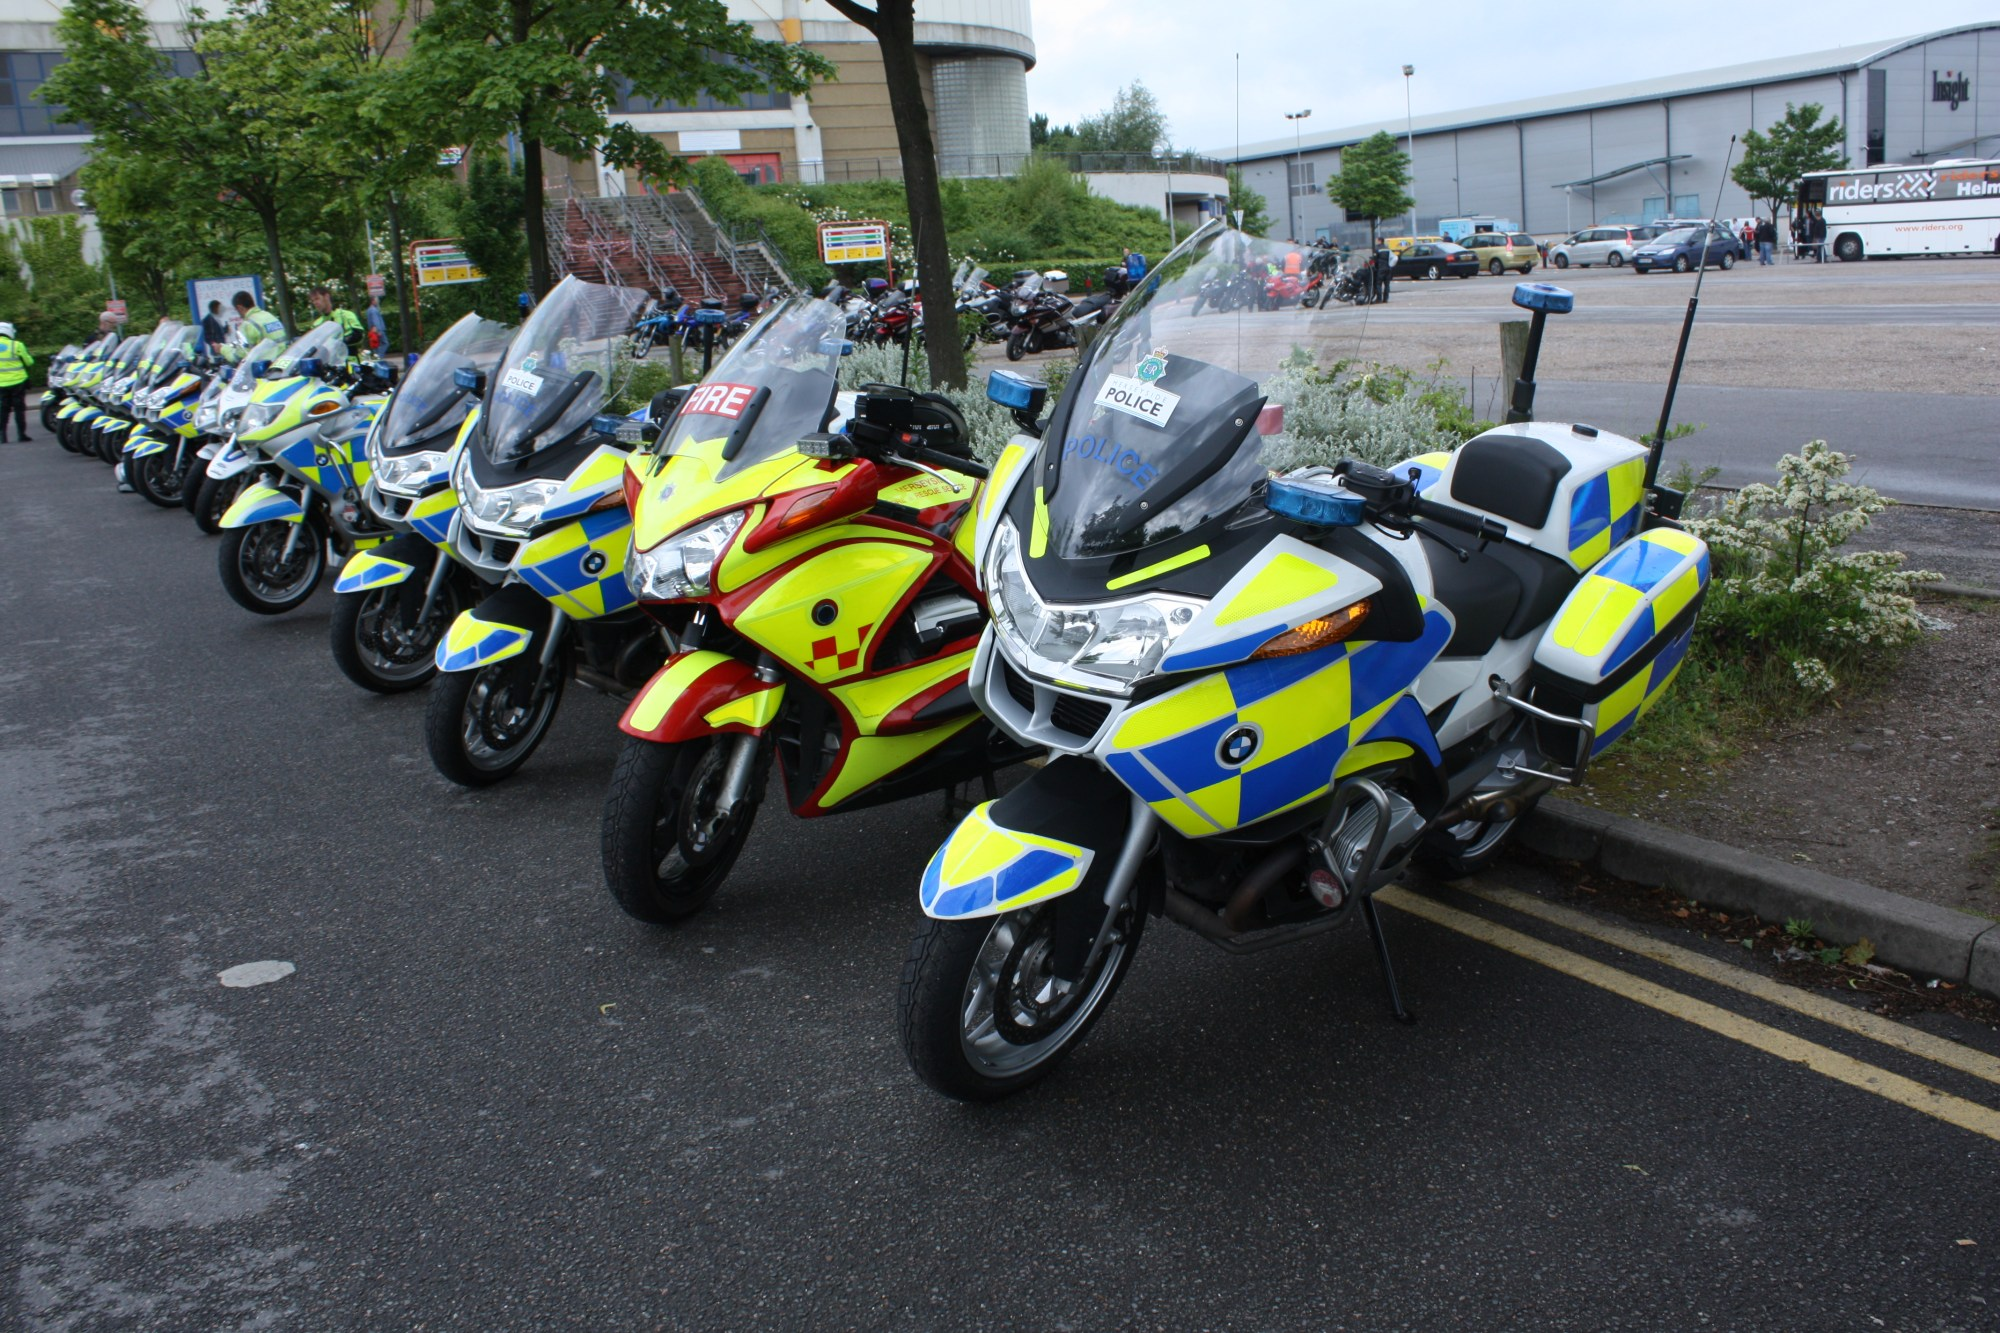 hight resolution of file merseyside police and fire motorcycles jpg